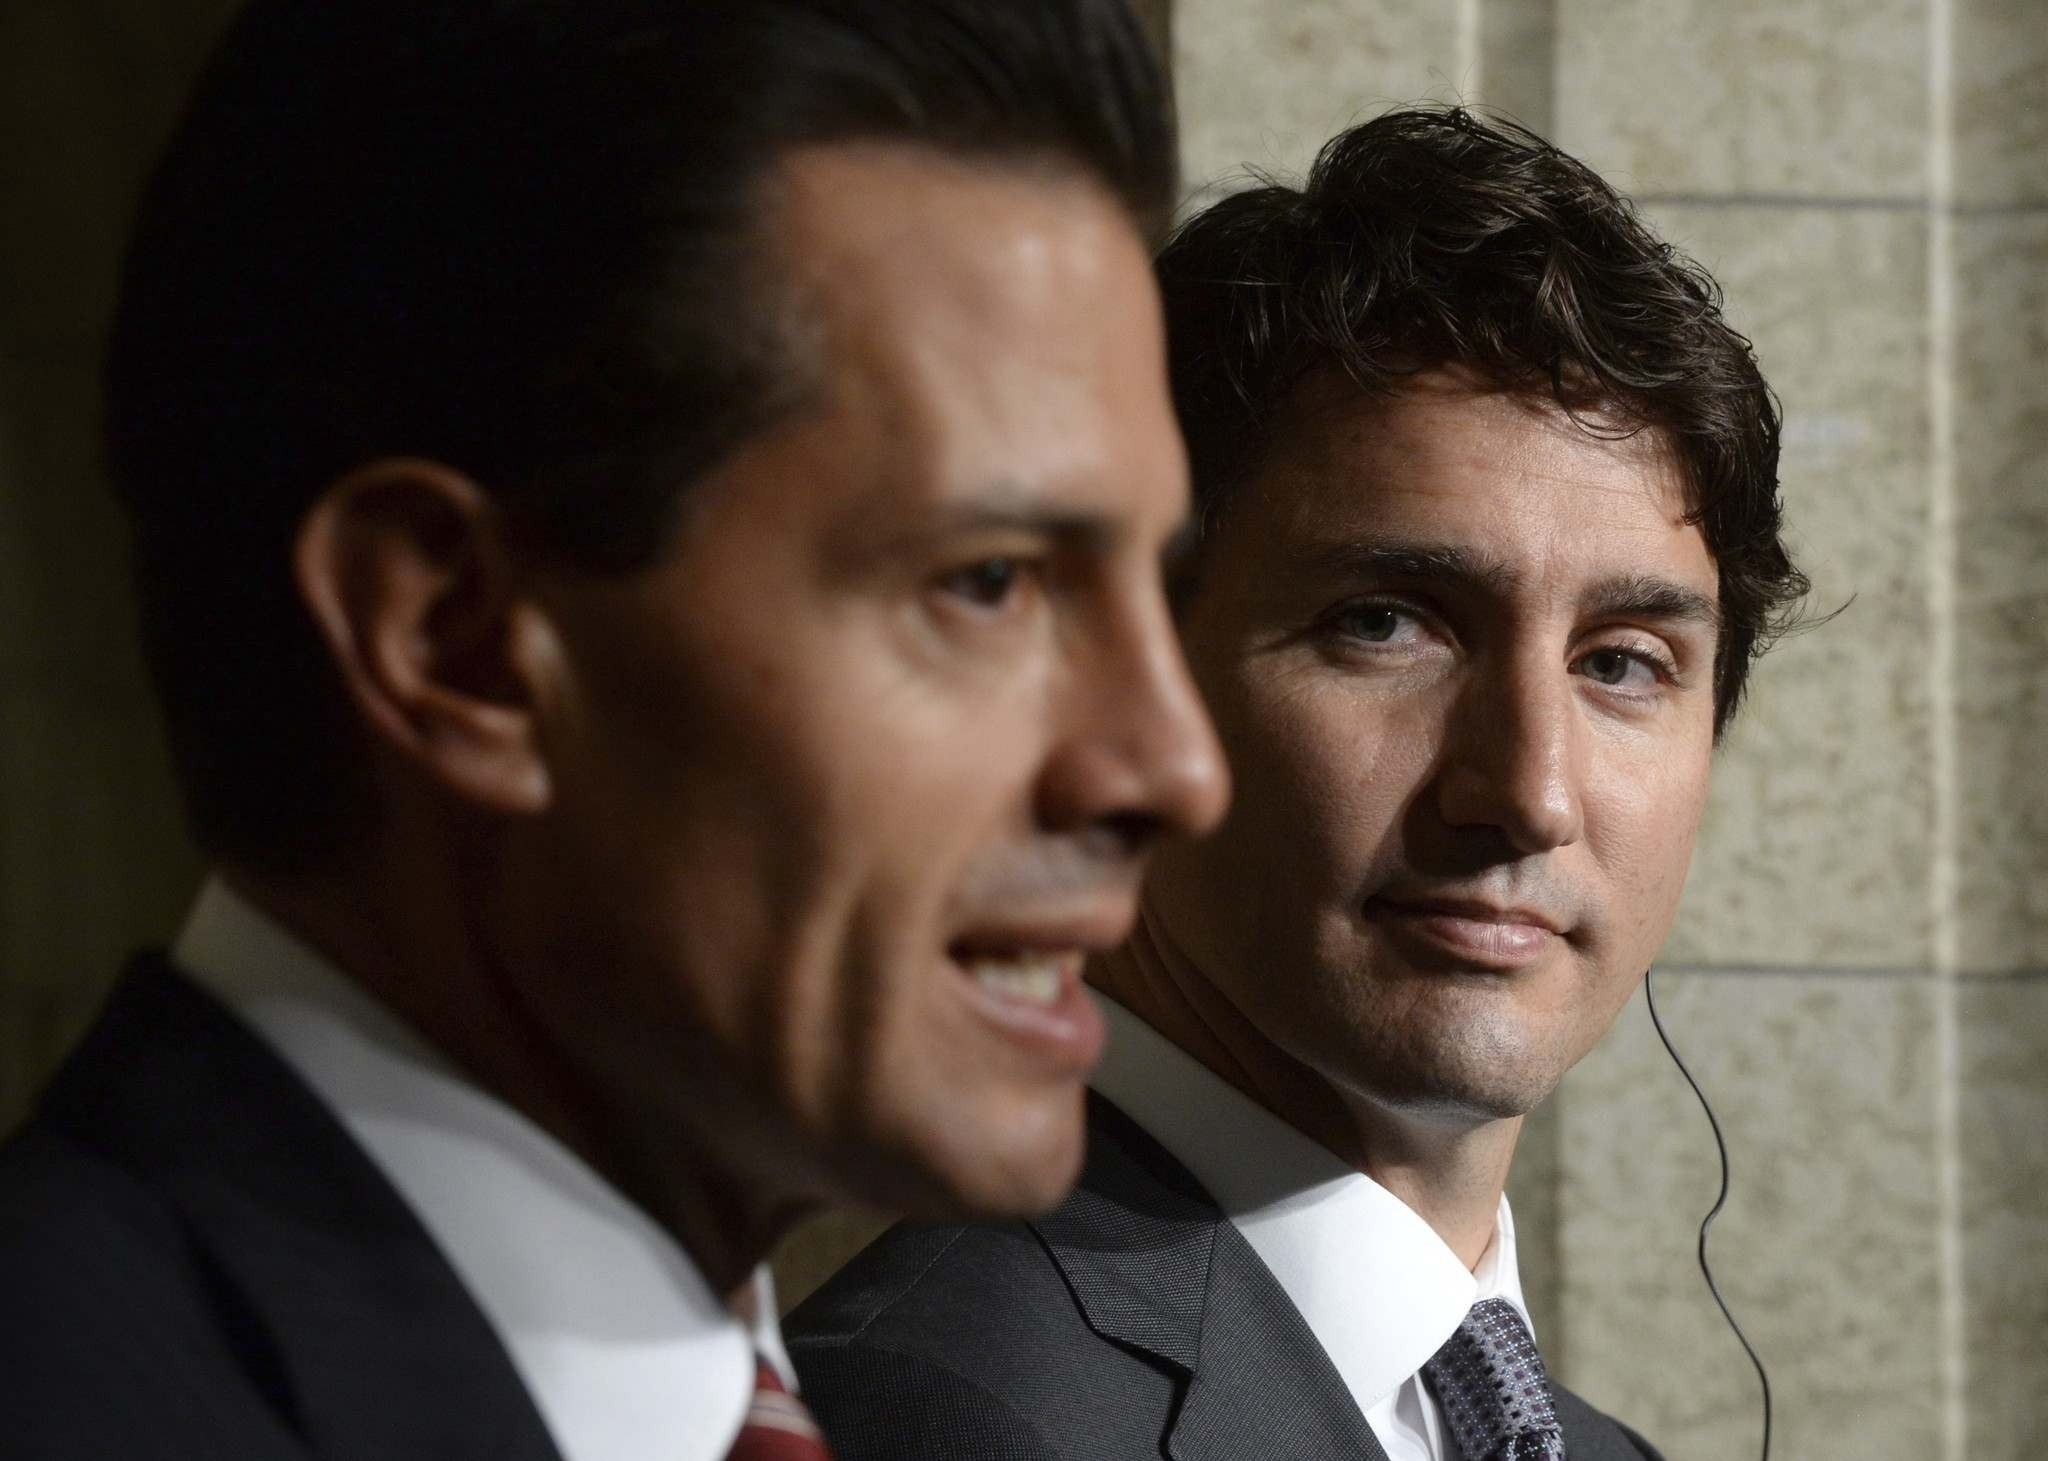 Canada should work with Mexico against U.S. protectionism